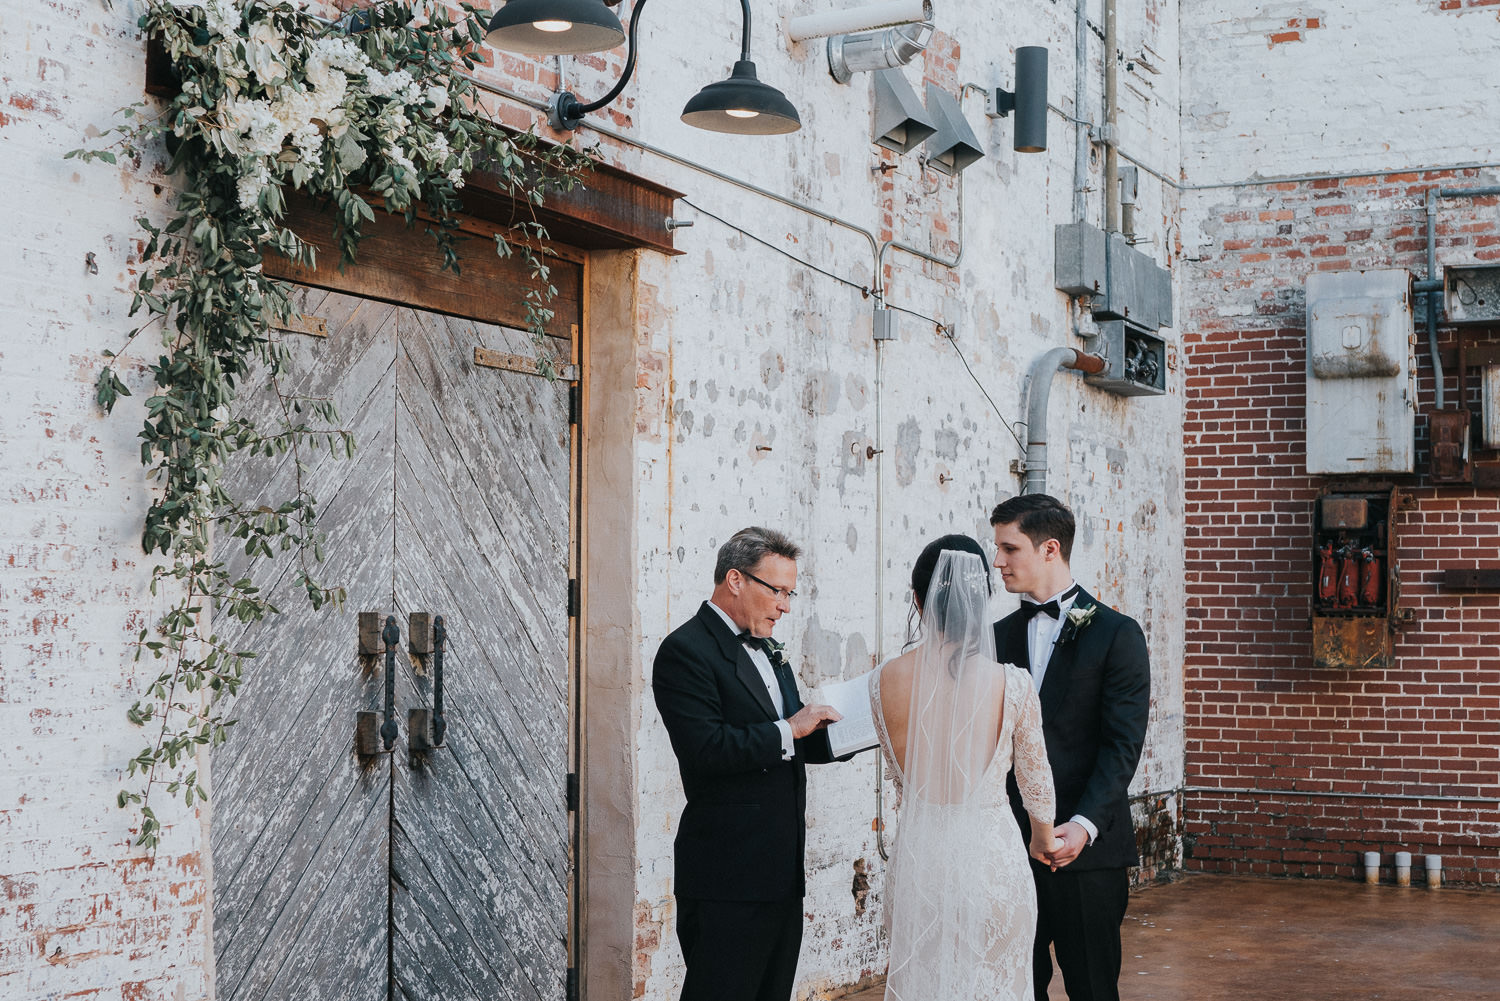 Outdoor ceremony at The Engine Room